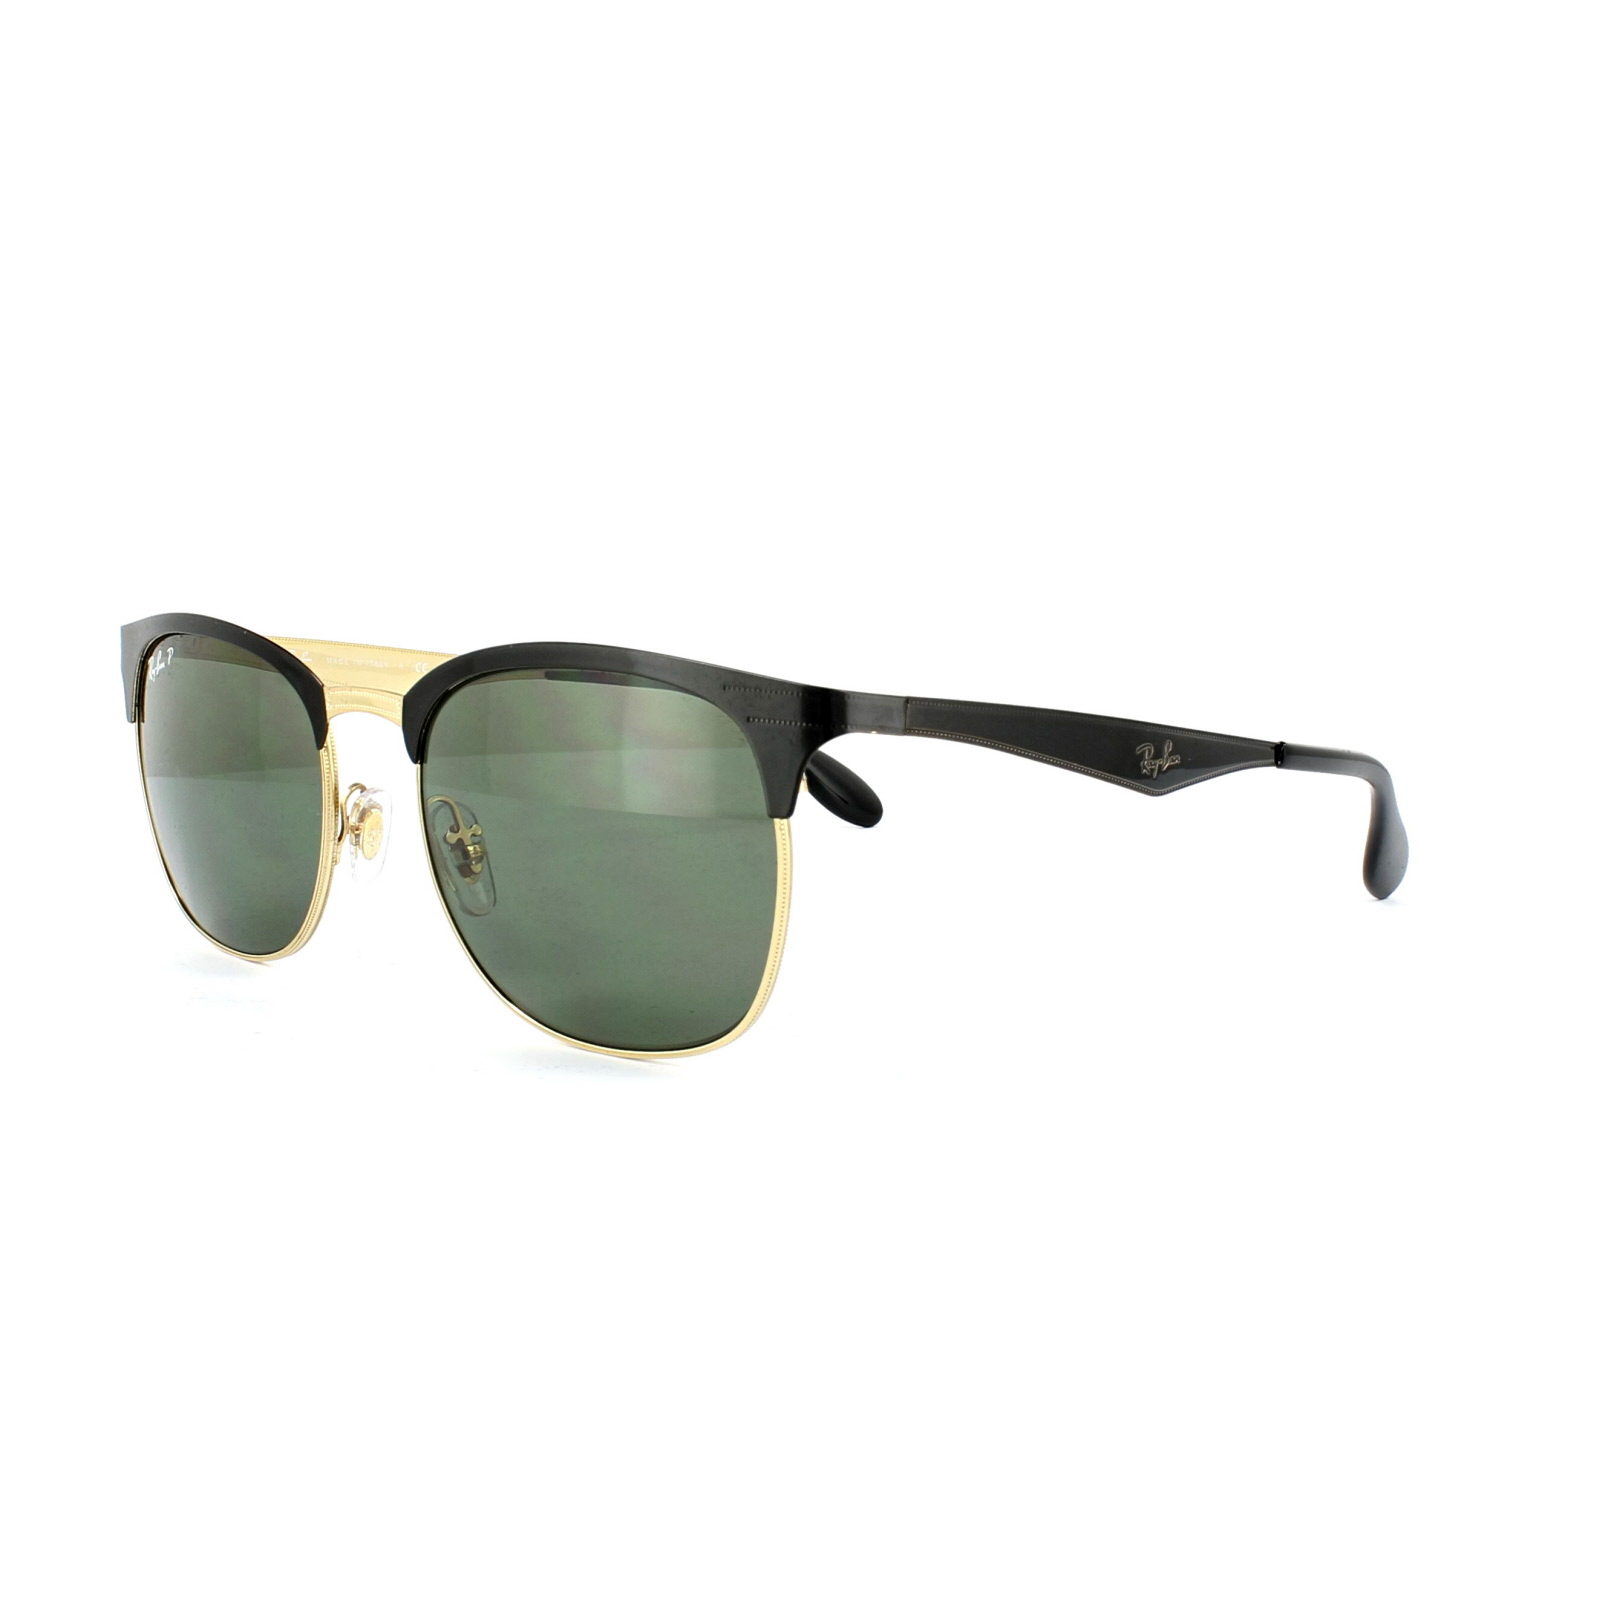 Ray-Ban Sunglasses 3538 187/9A Black \u0026amp; Gold Green Polarized